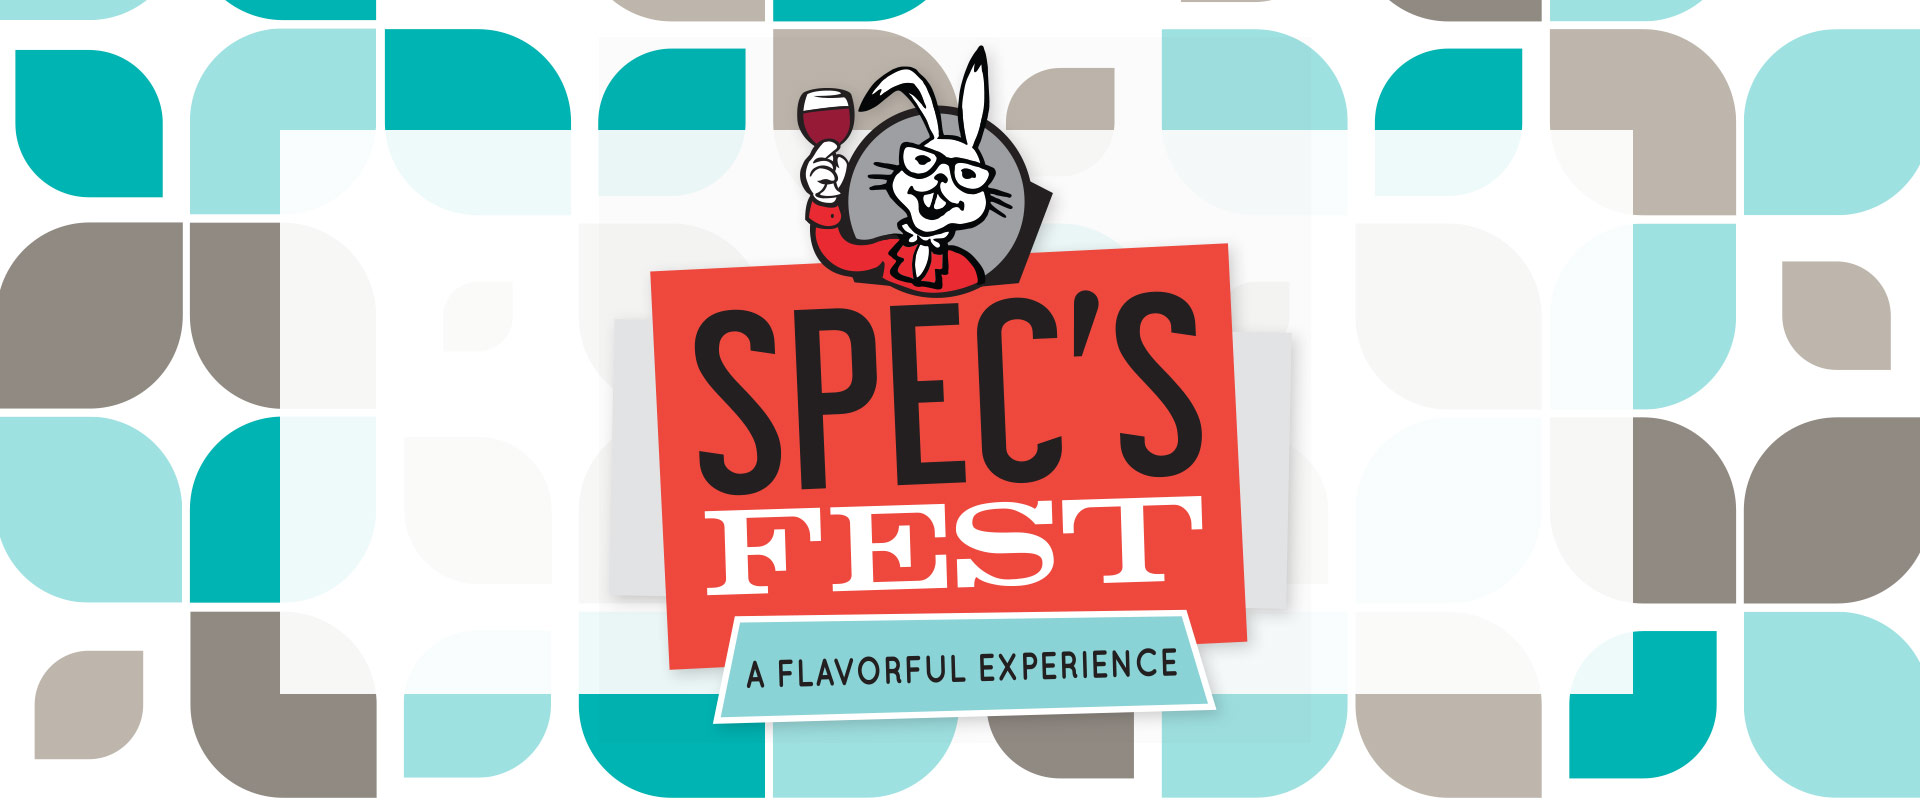 Spec's Fest - A Flavorful Experience